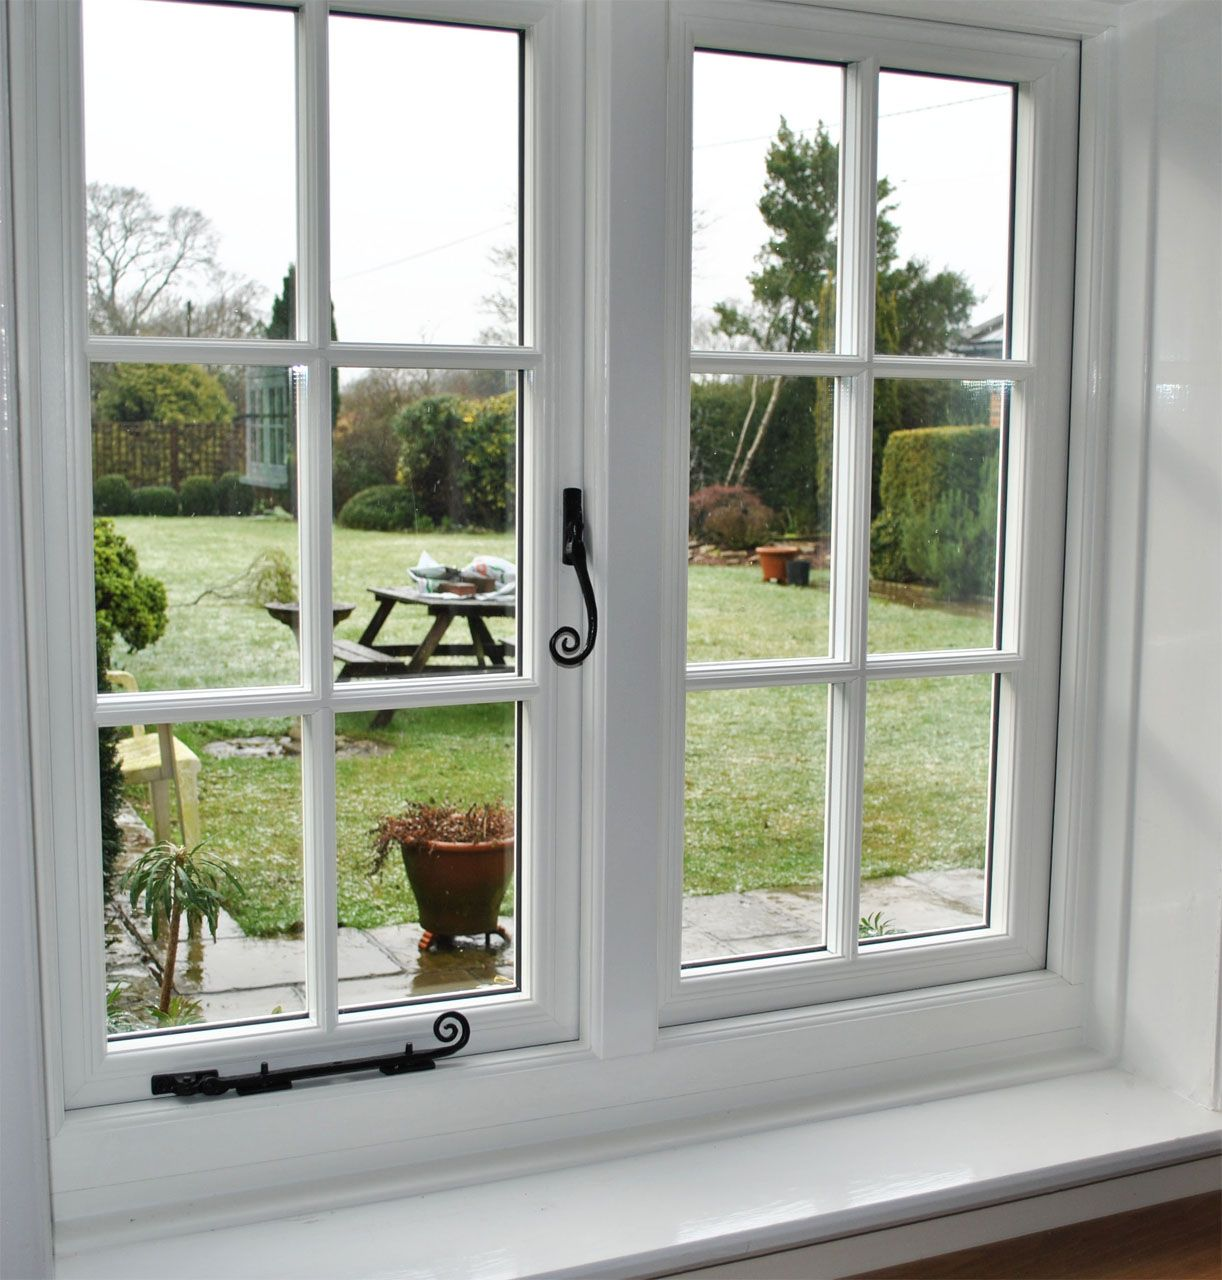 Cottage windows upvc google search window wonder for Upvc windows